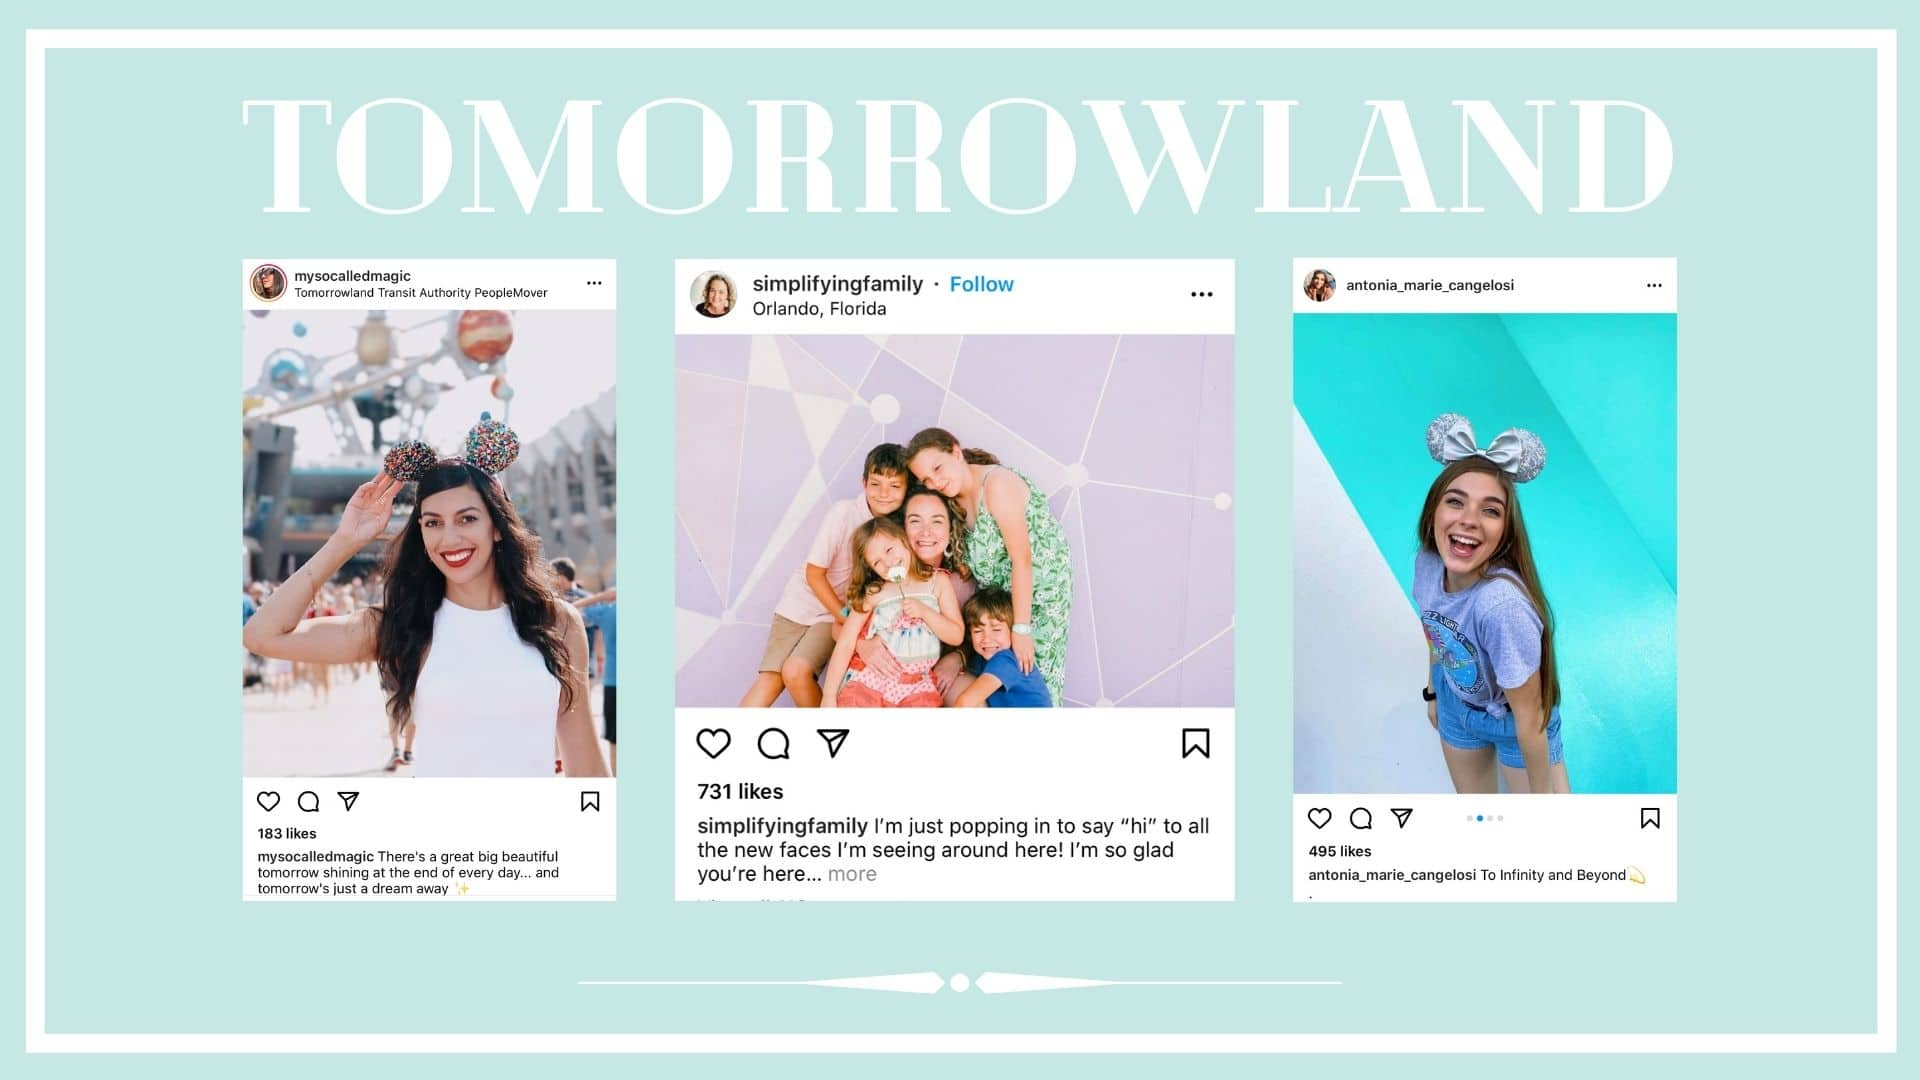 Instagram posts from Tomorrowland in Disneyland